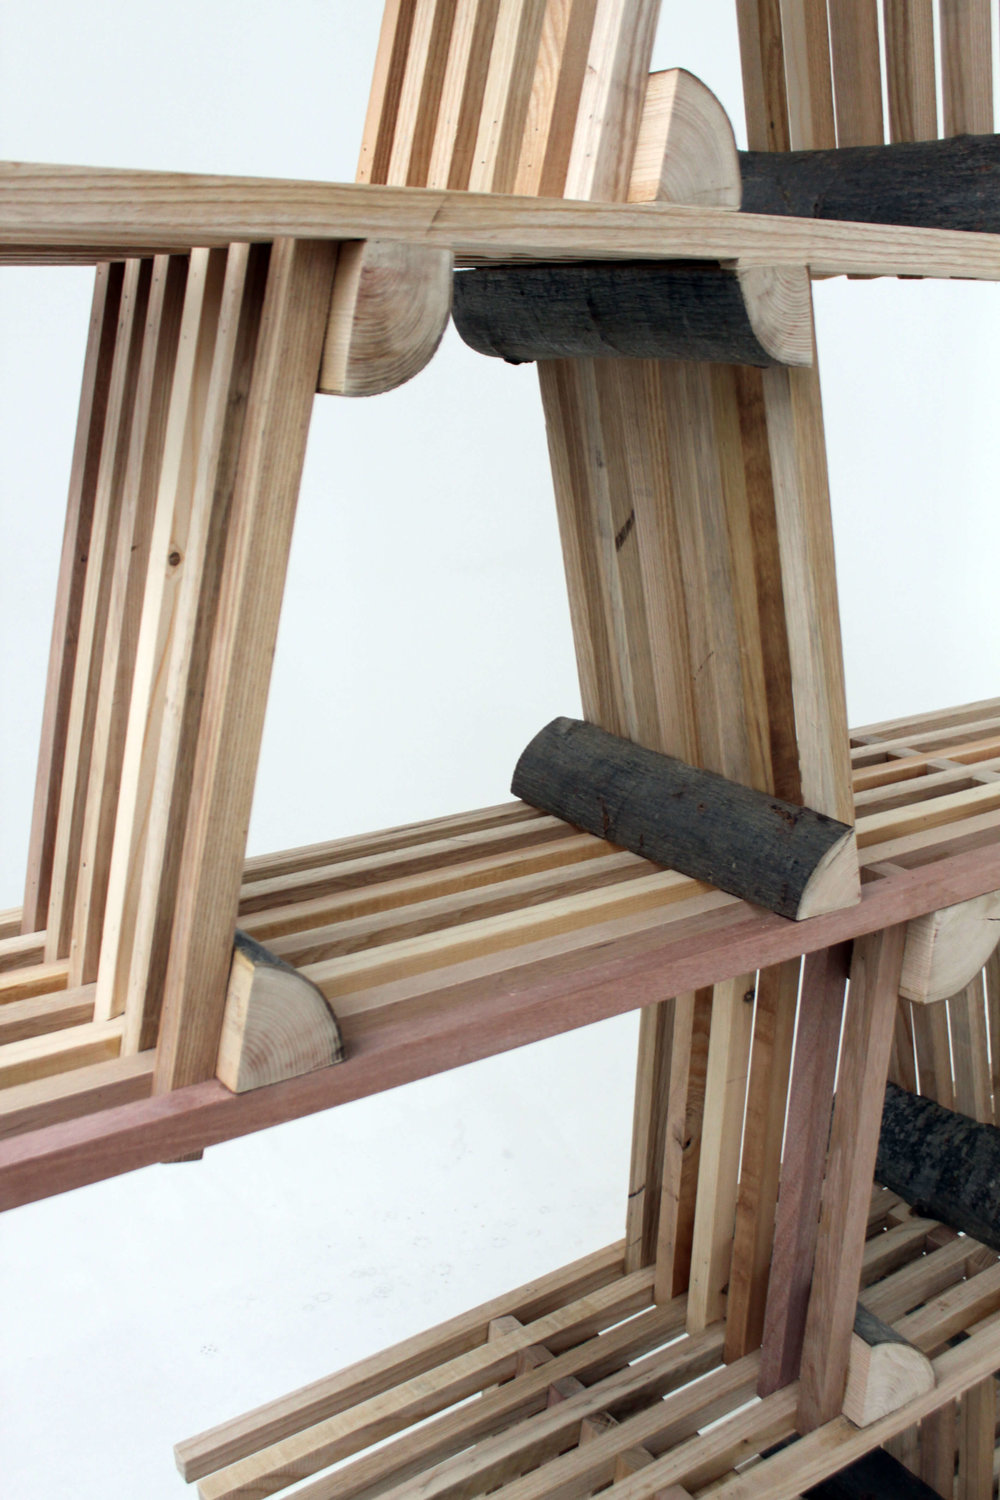 Details of a free standing shelf from the Split Series, 2017.